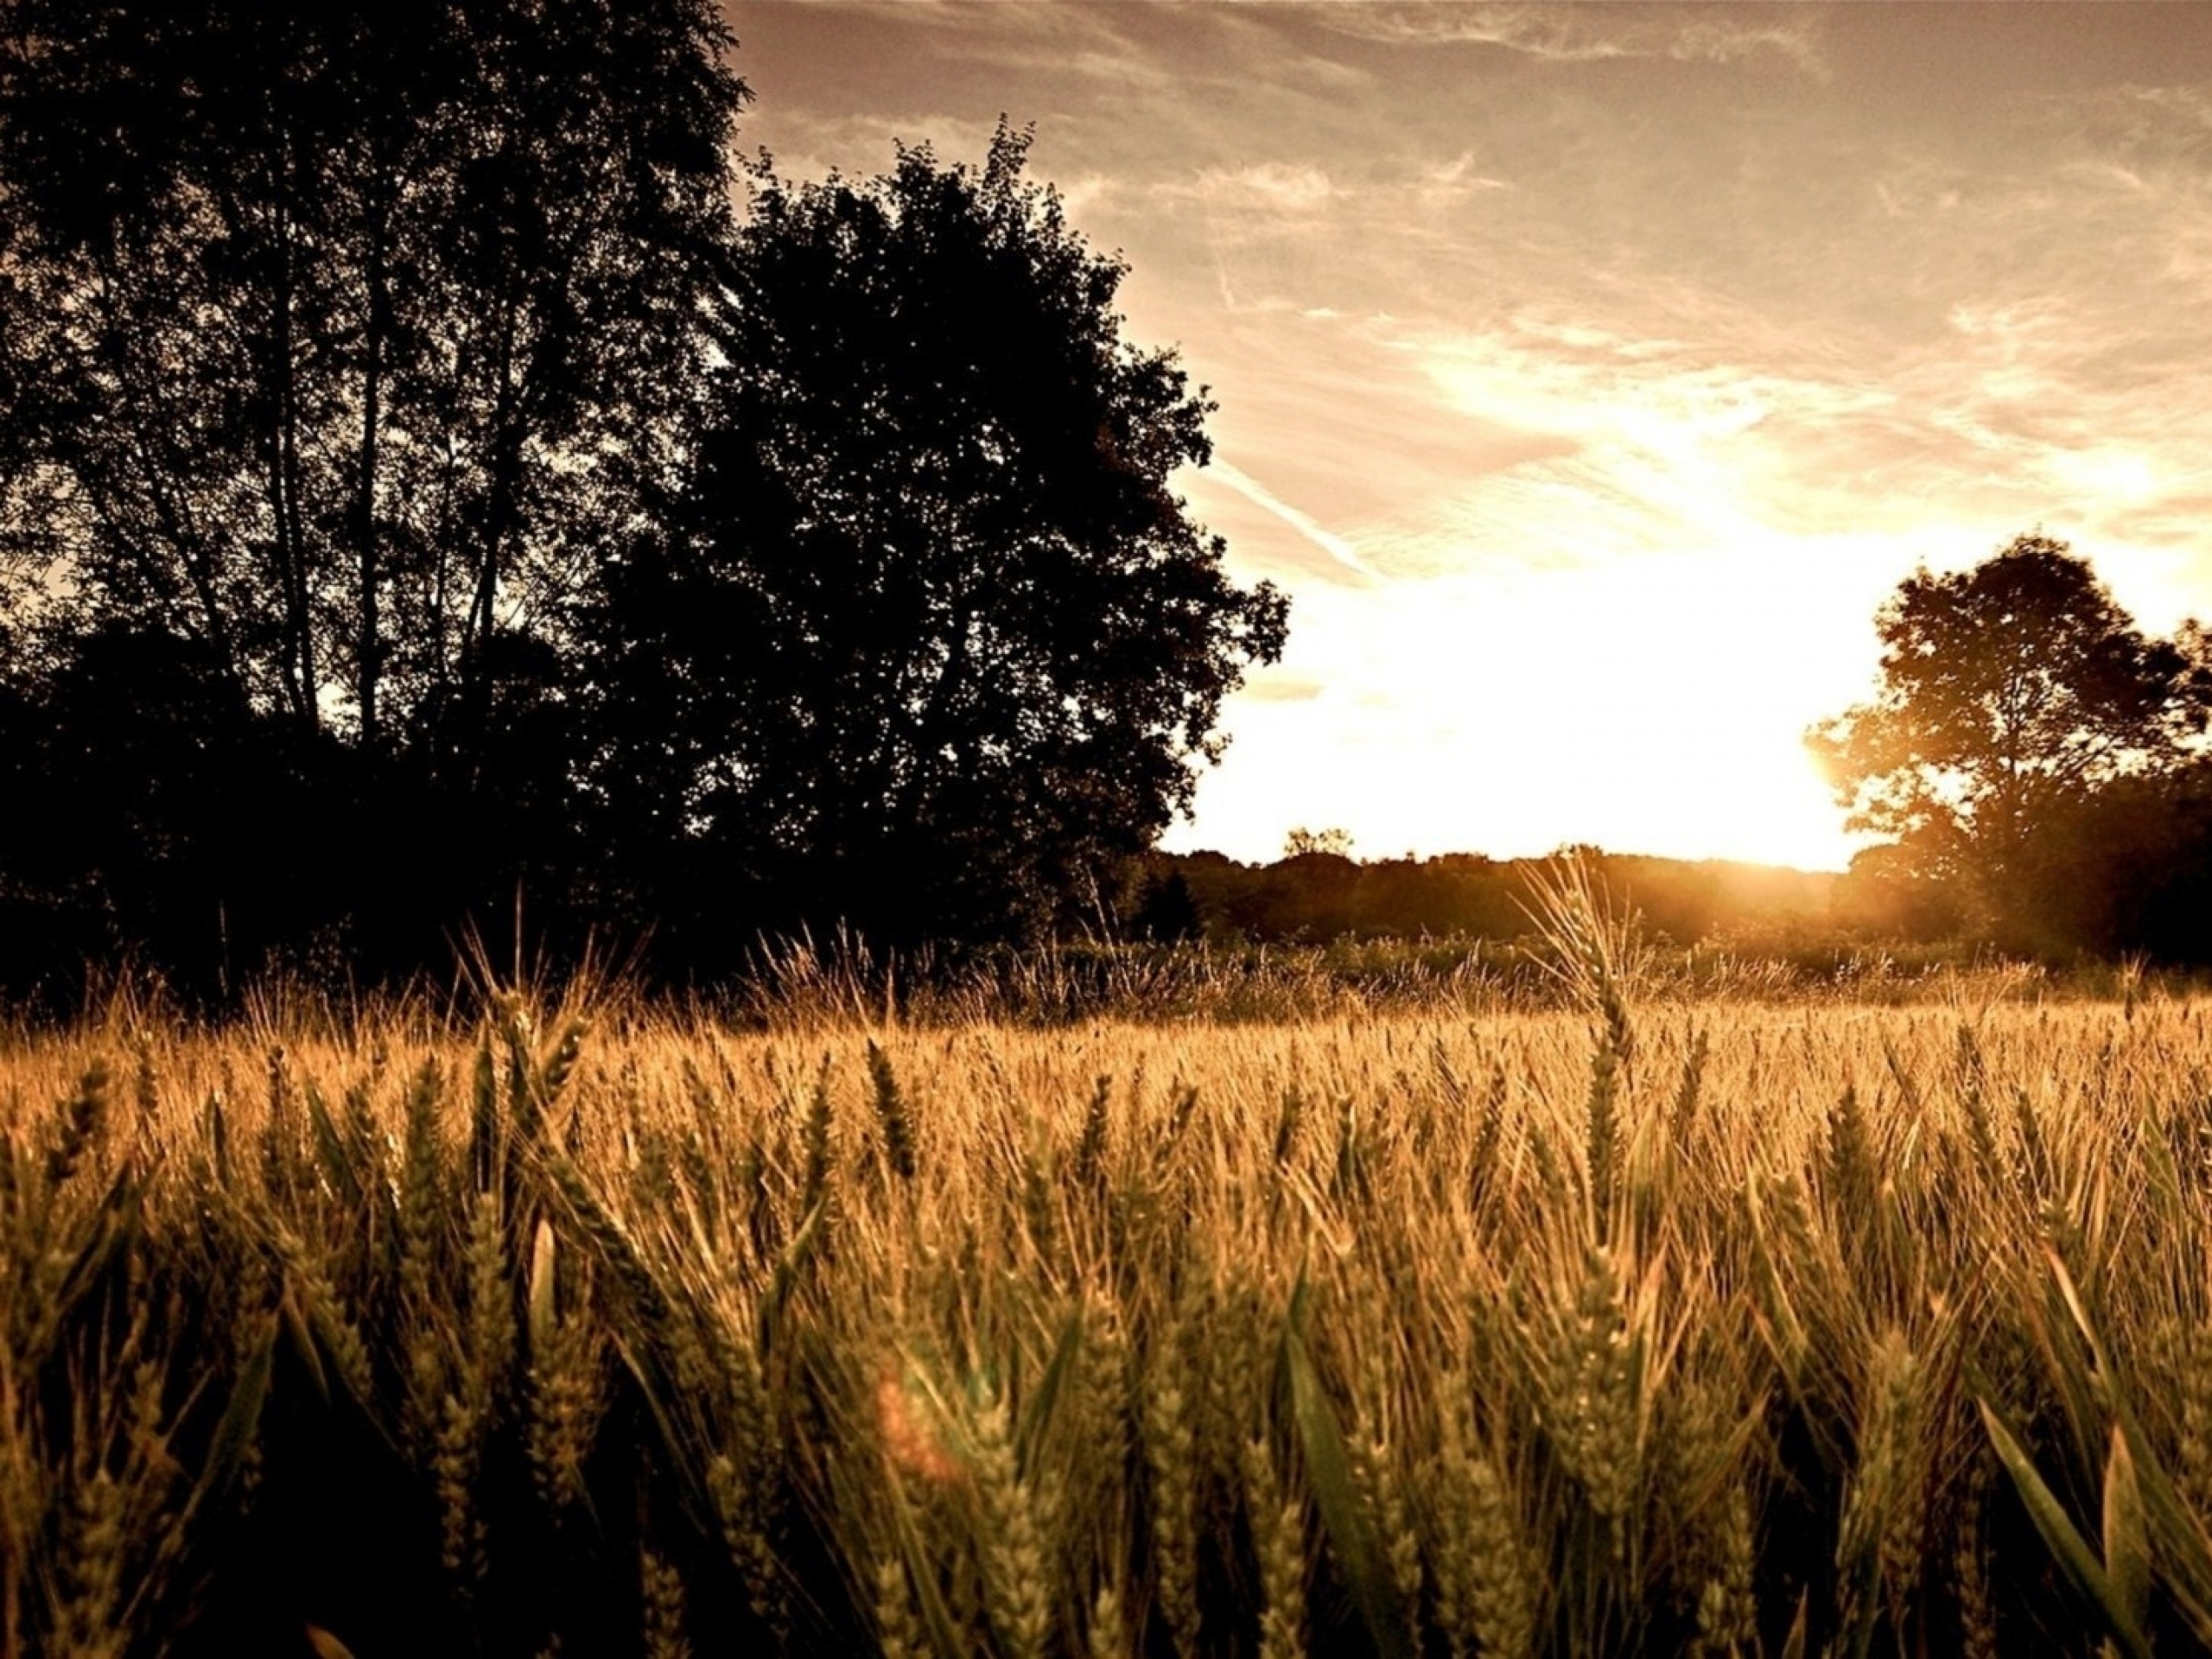 Weizen-feld Dunkle Bäume & Sun Wallpapers And Stock - Nature Landscape Oil Painting , HD Wallpaper & Backgrounds